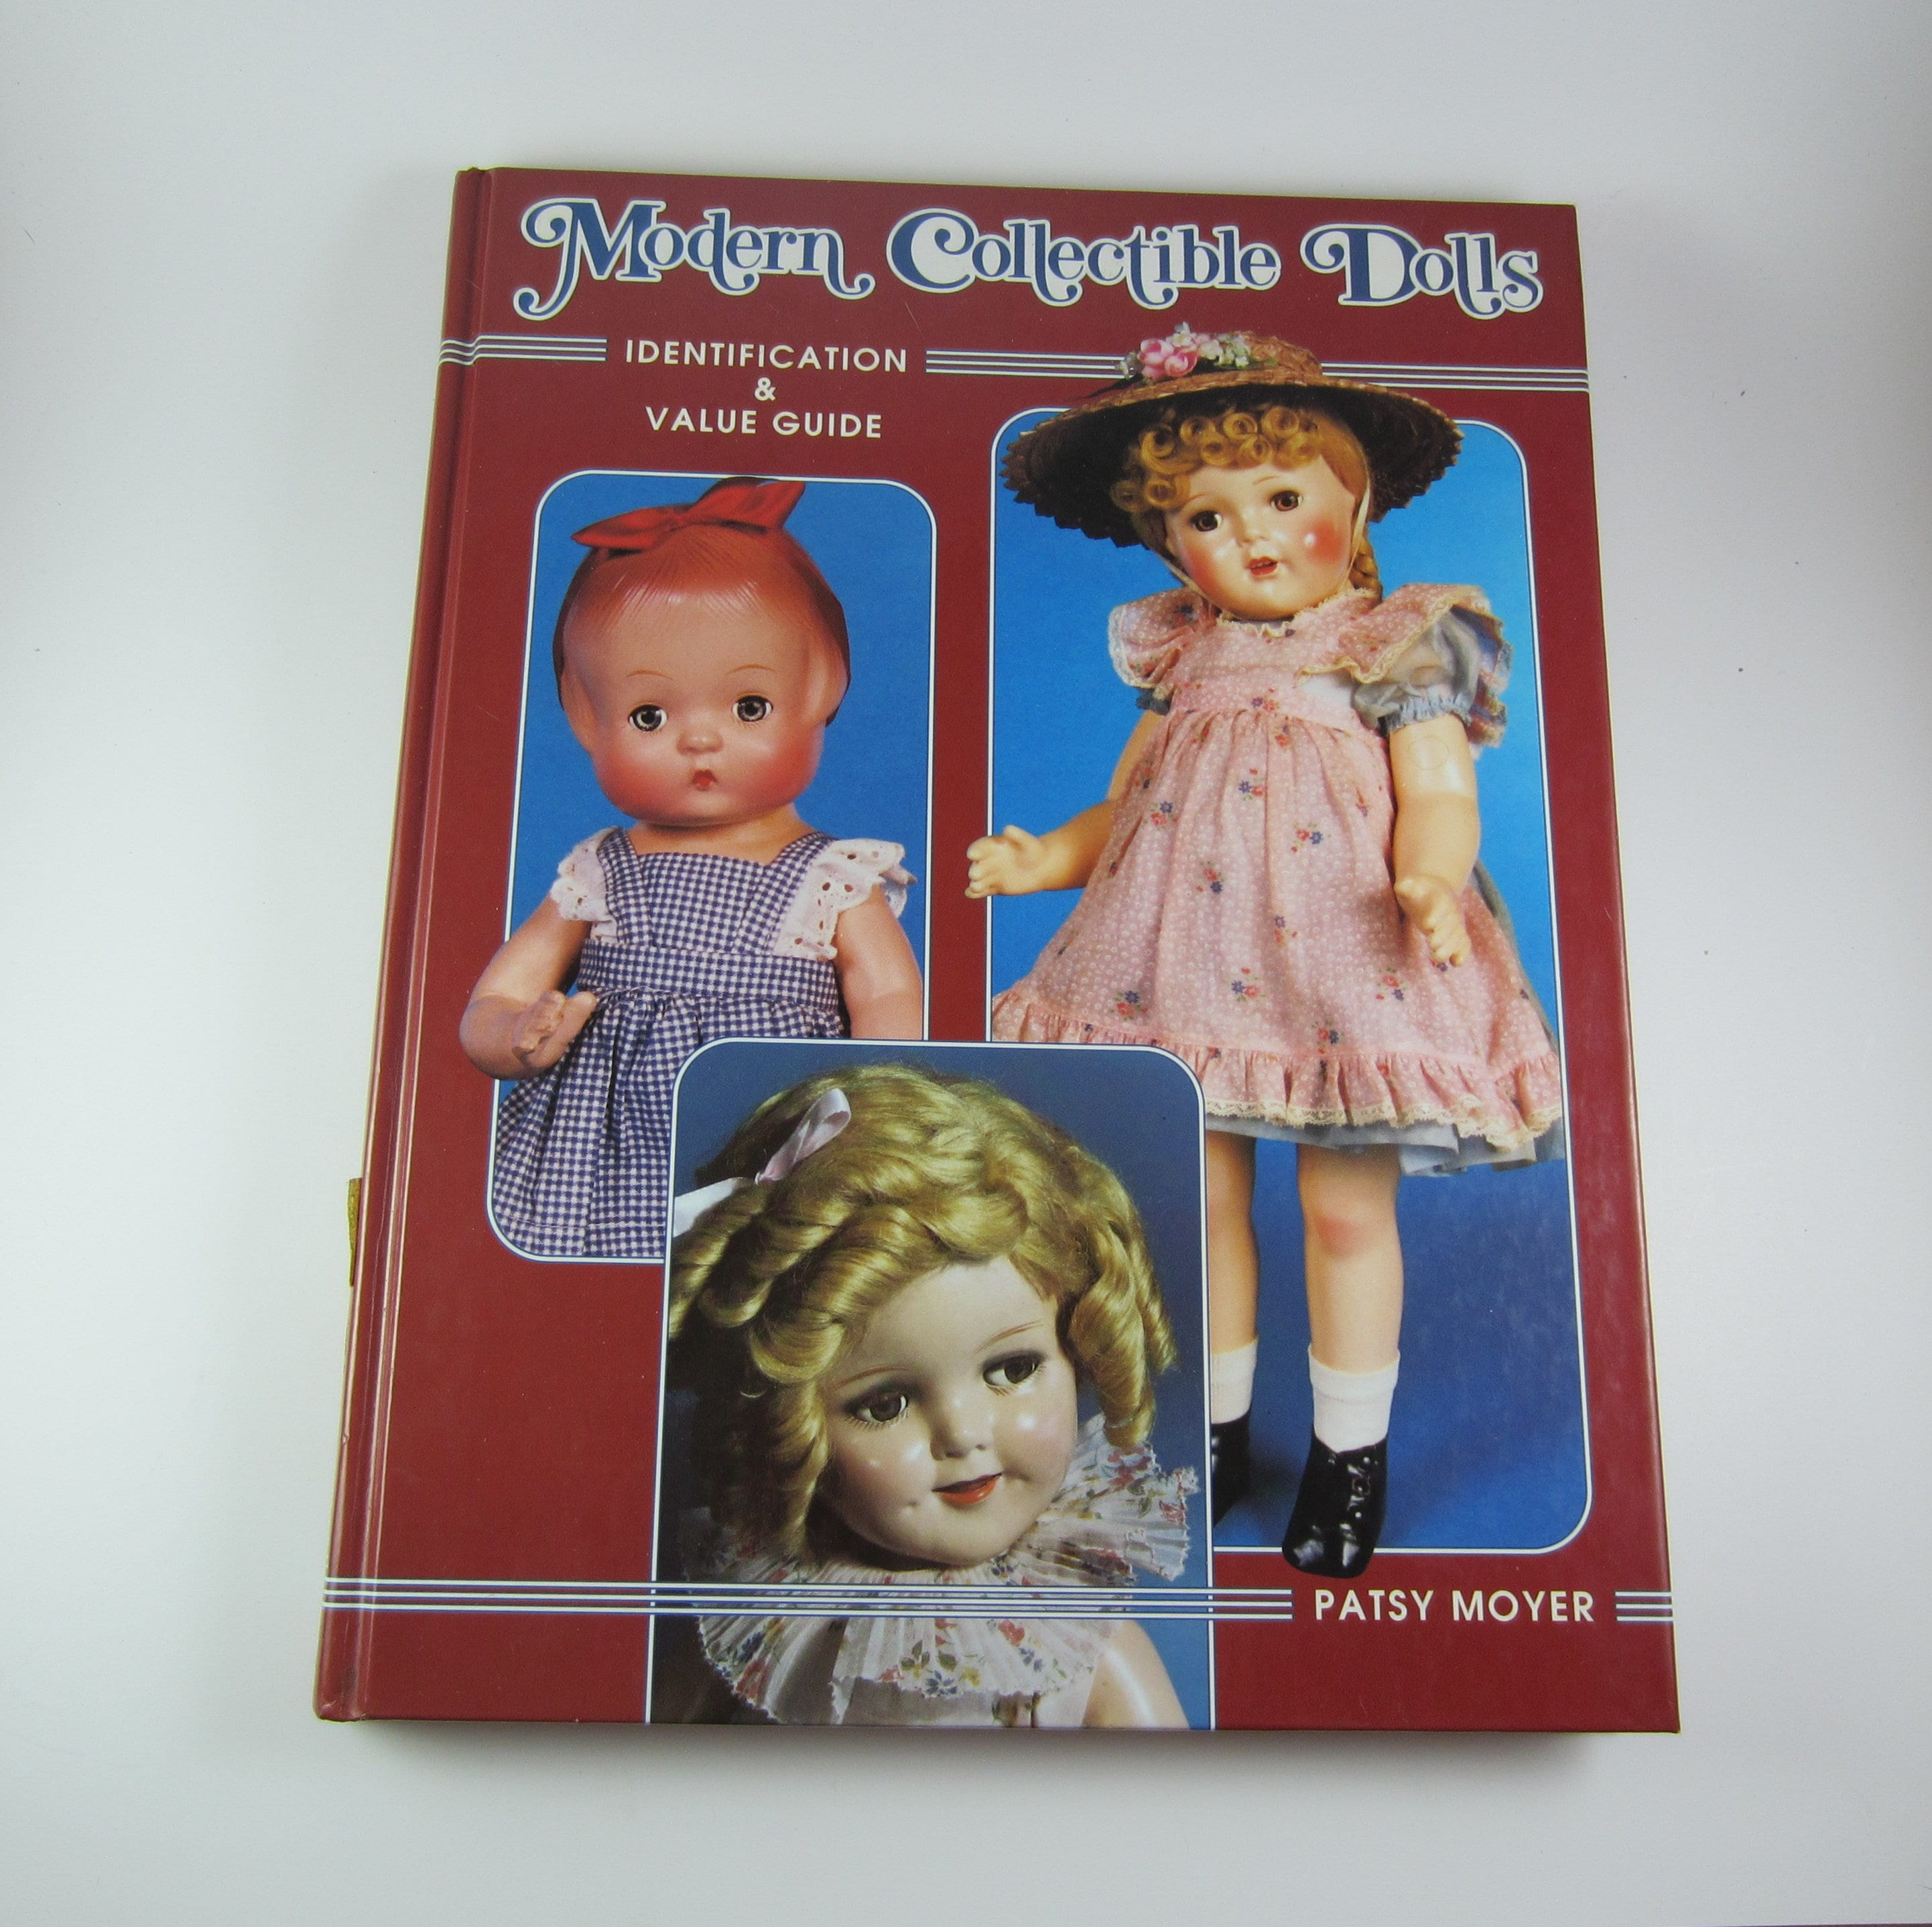 doll price guide book manual guide example 2018